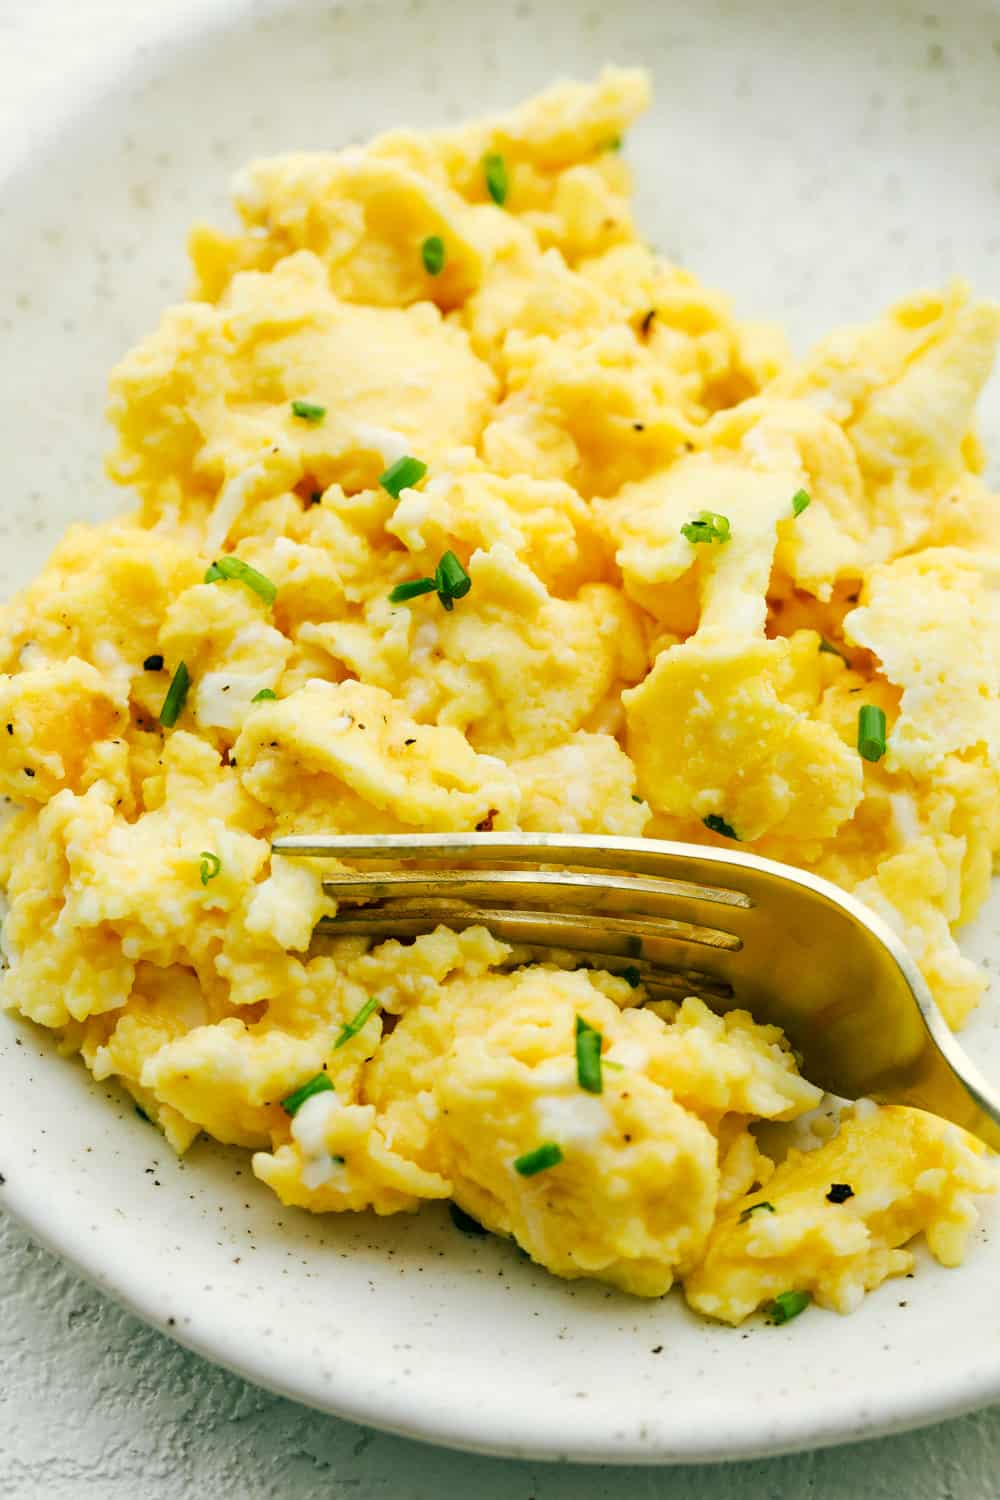 Perfectly soft, fluffy and light scrambled eggs.